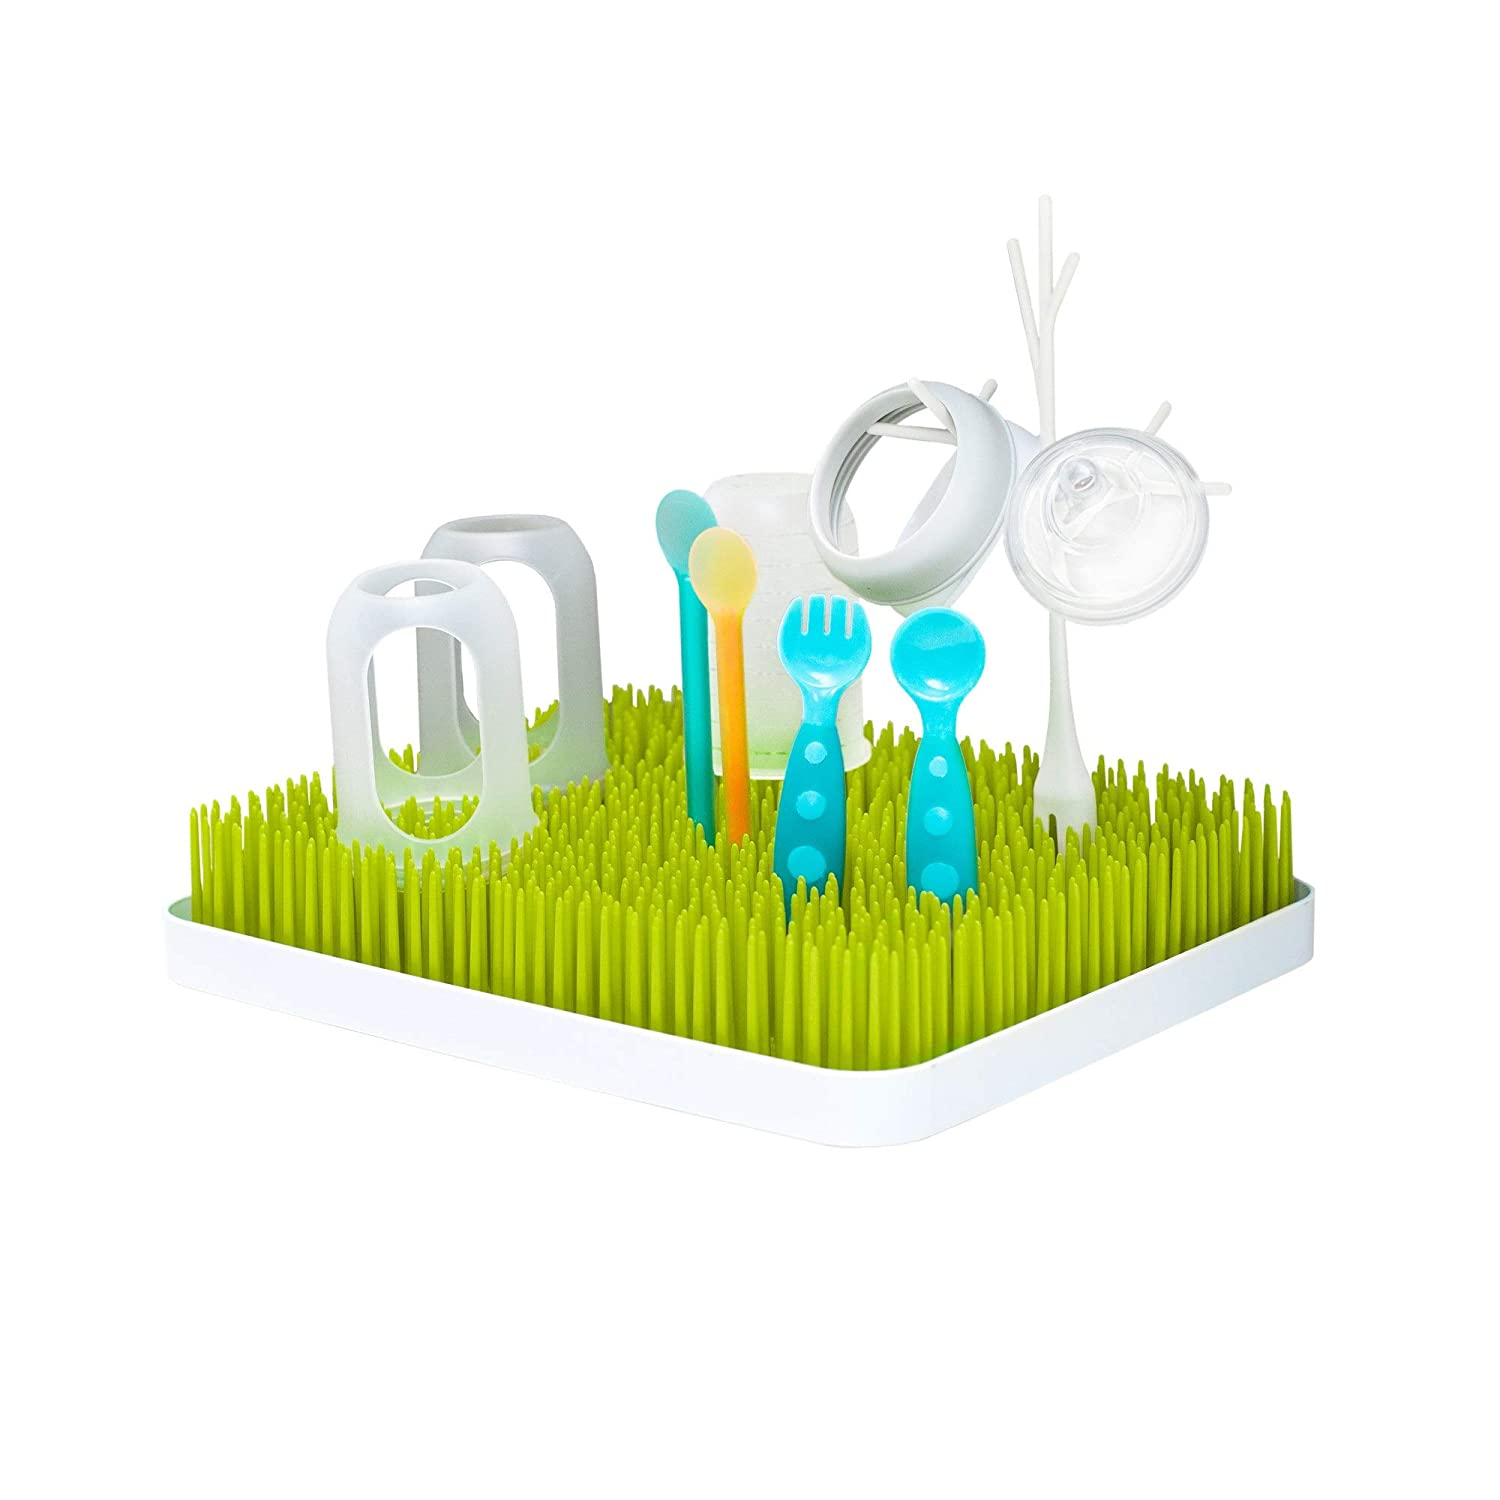 Boon Drying Rack Lawn Countertop, Green : Baby Bottle Drying Racks : Baby